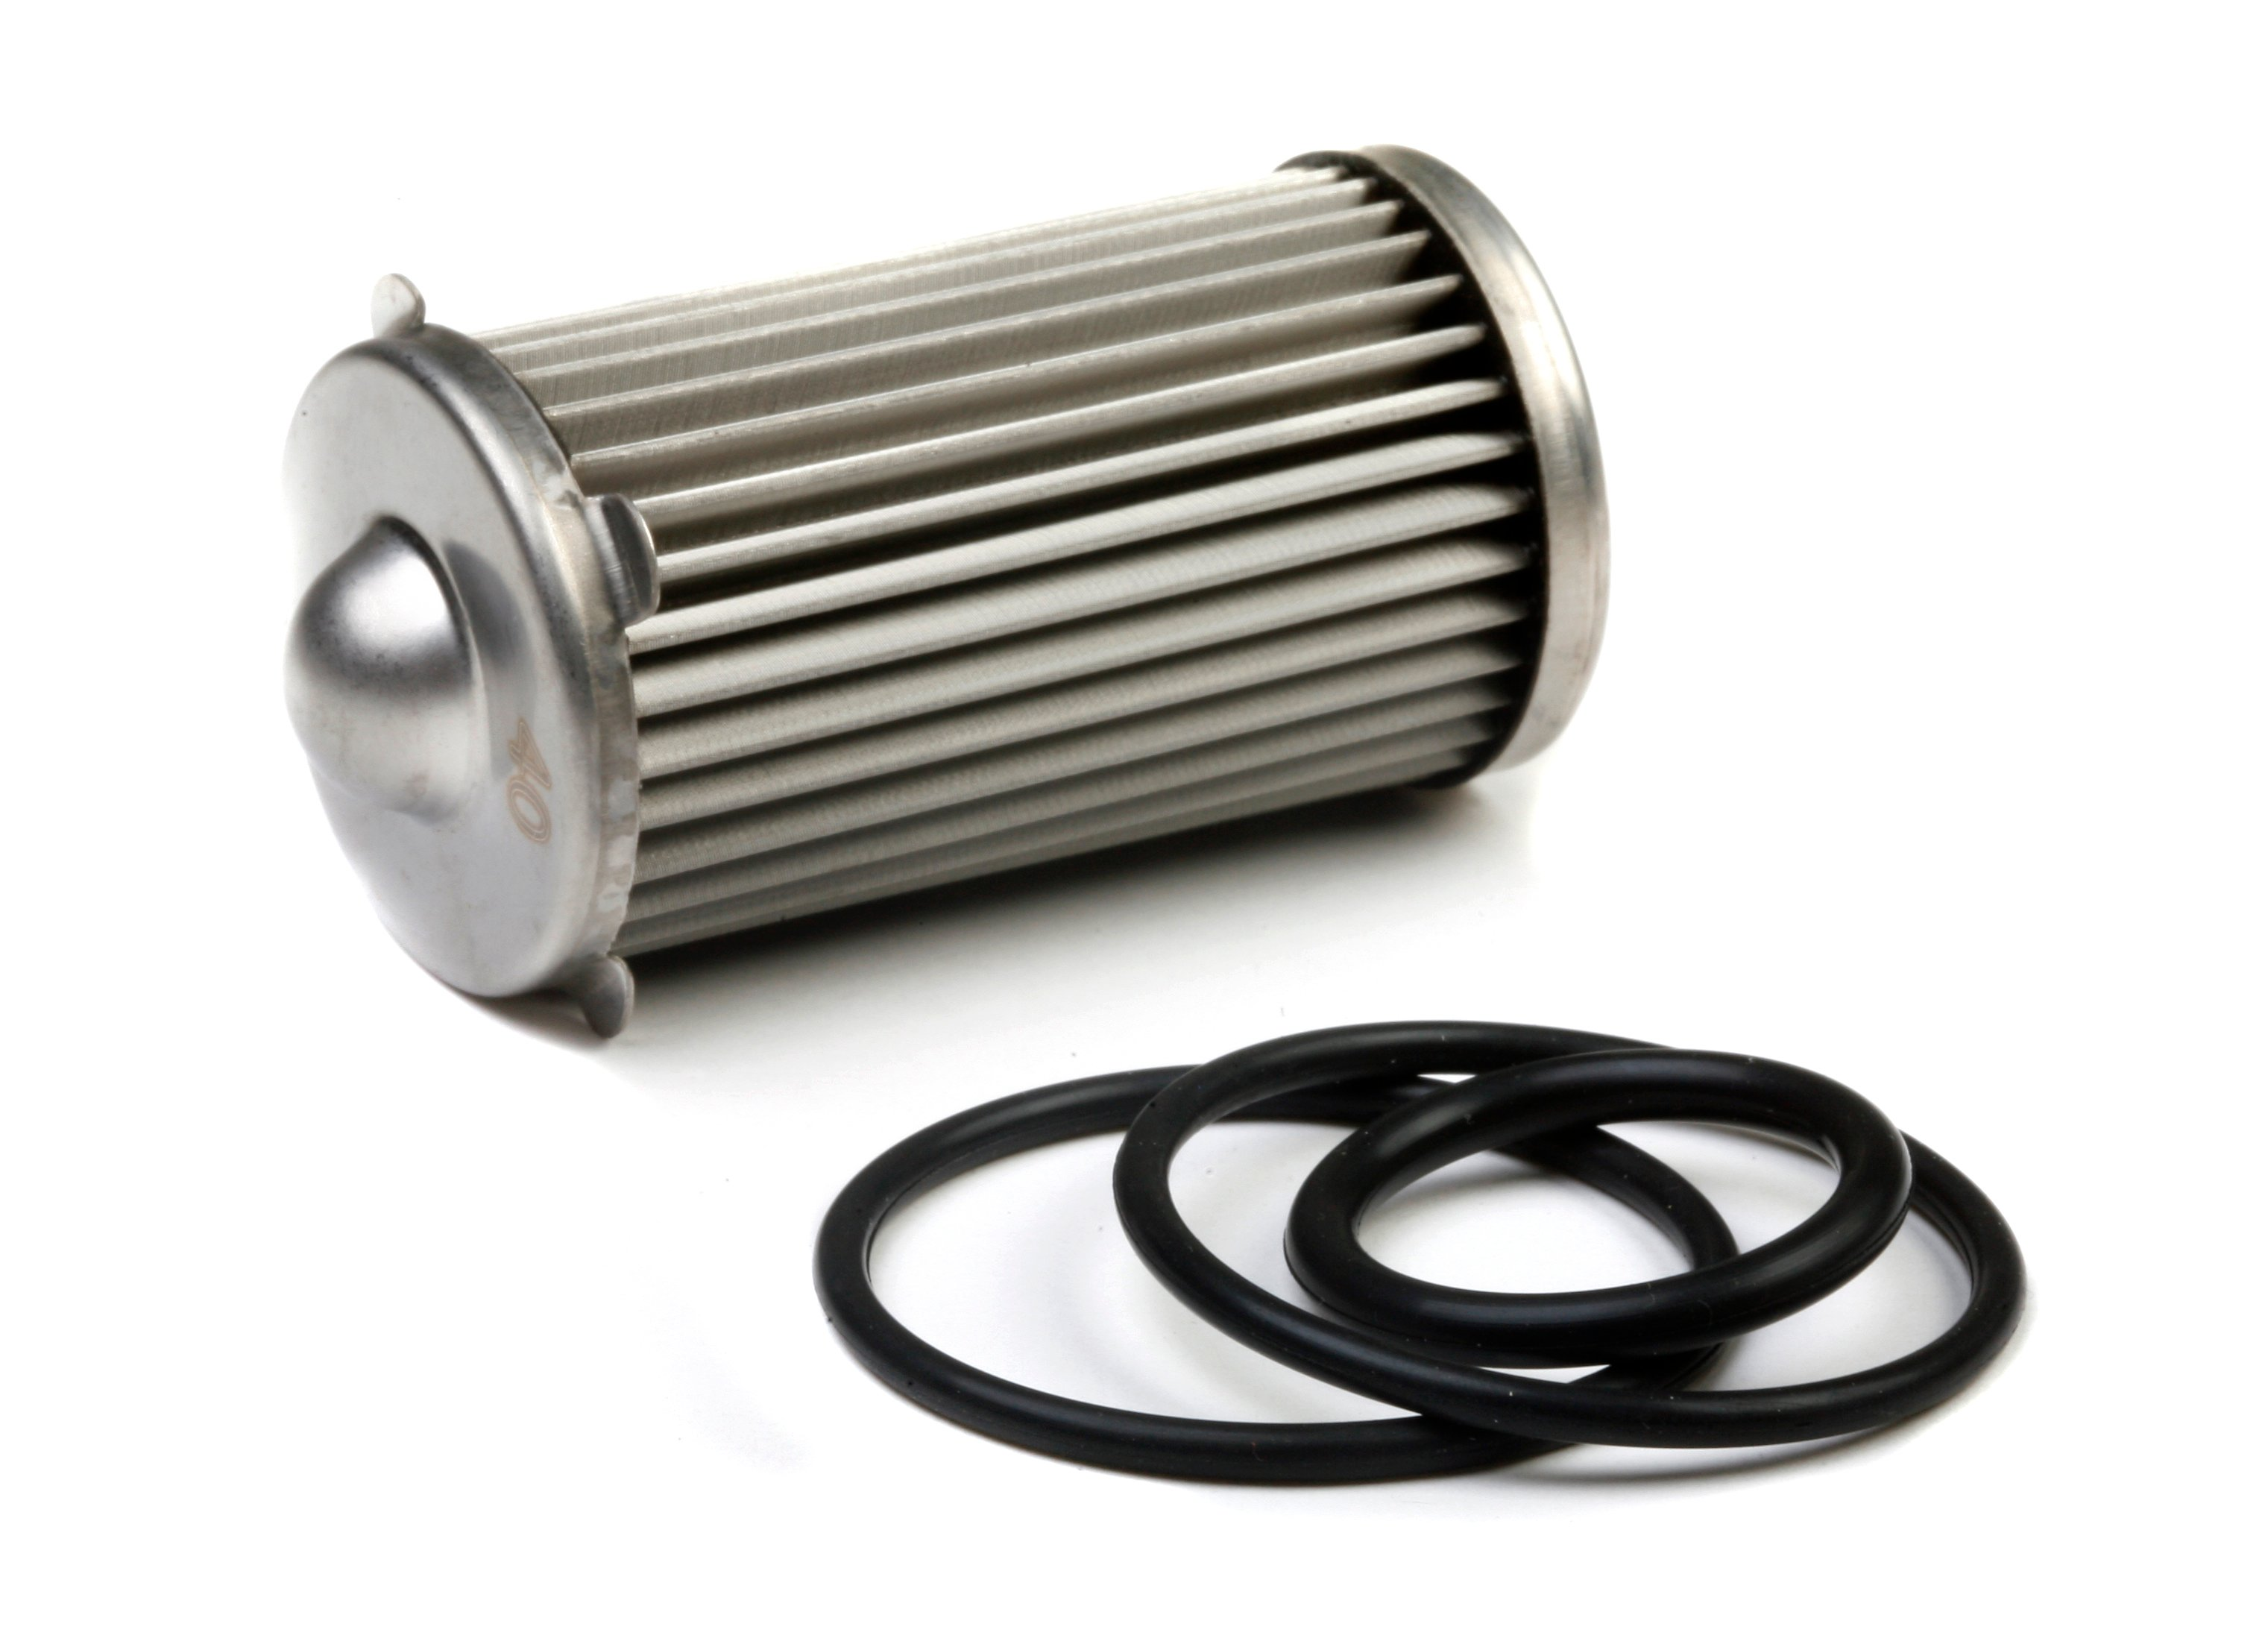 162-566 - Fuel Filter Element and O-ring Kit Image